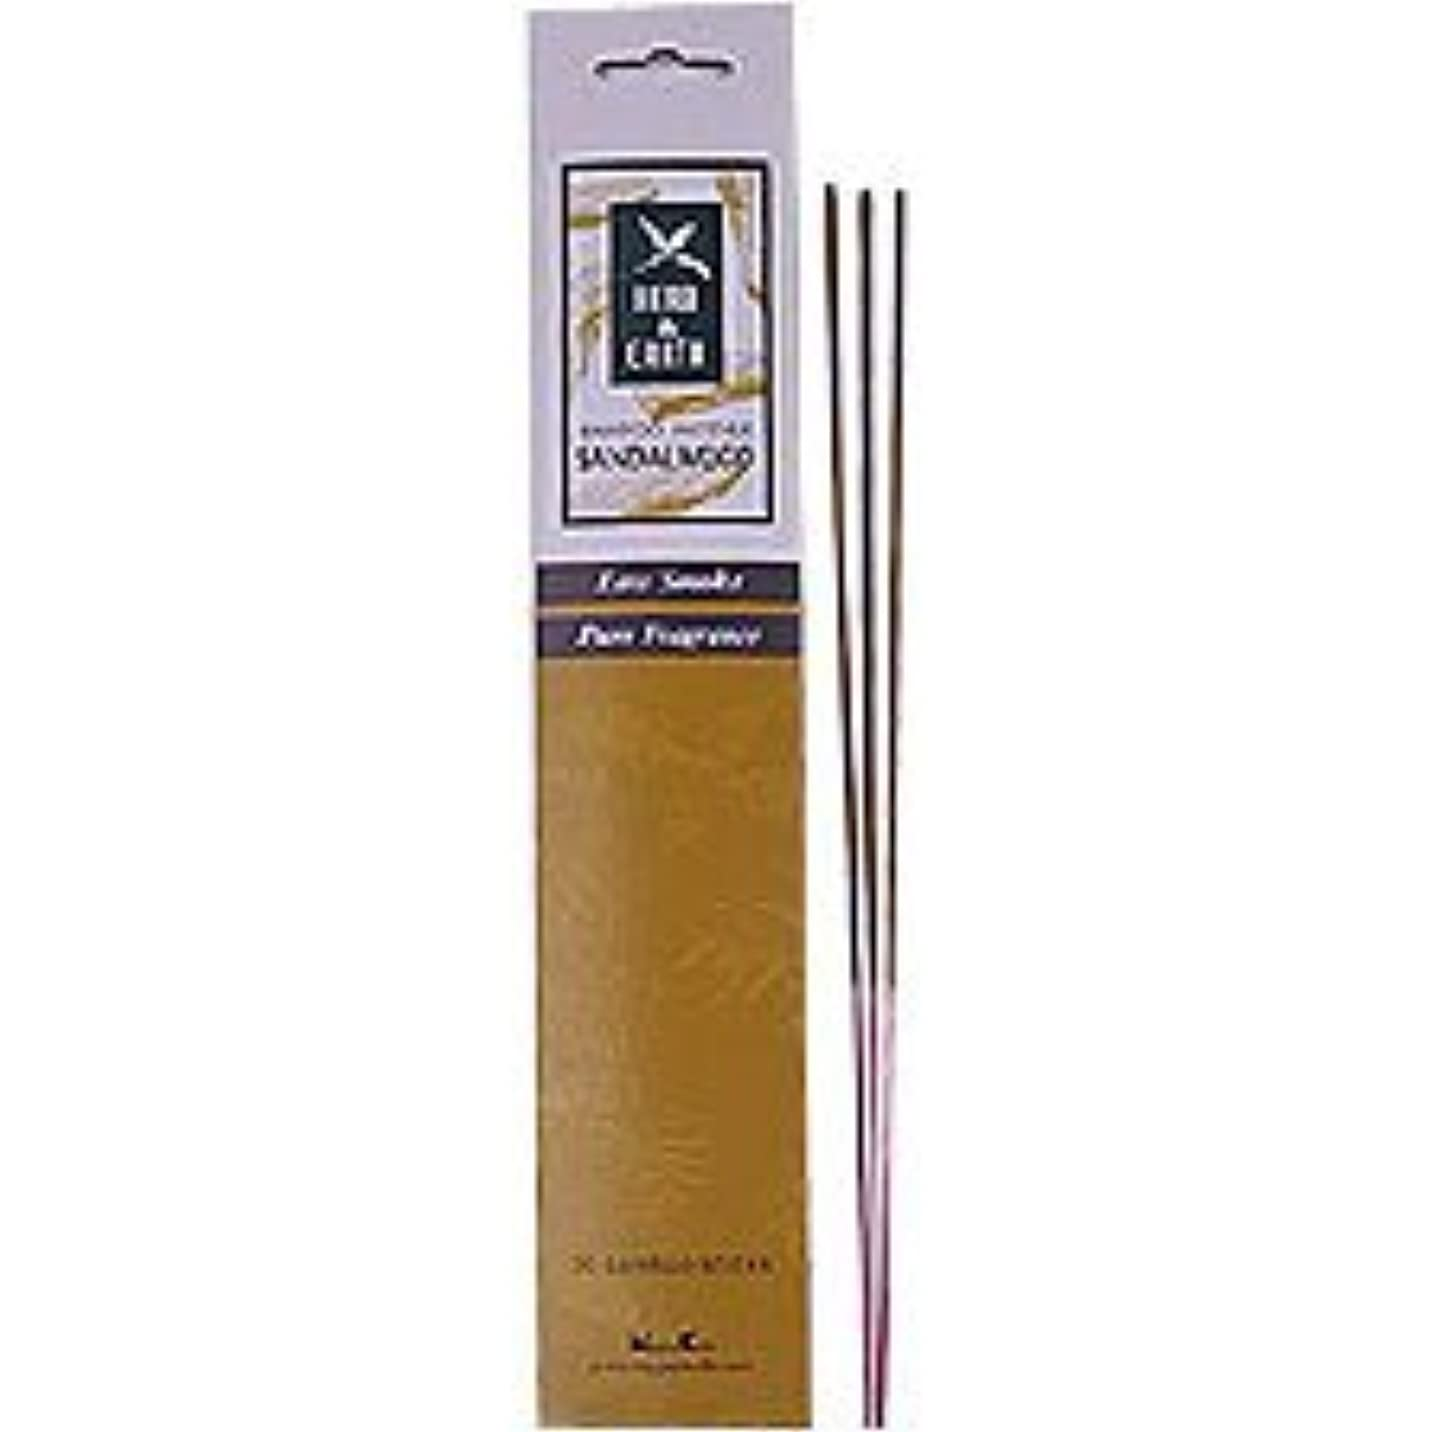 うまくやる()変動するブリリアントSandalwood - Herb and Earth Incense From Nippon Kodo - 20 Stick Package by Herb & Earth [並行輸入品]